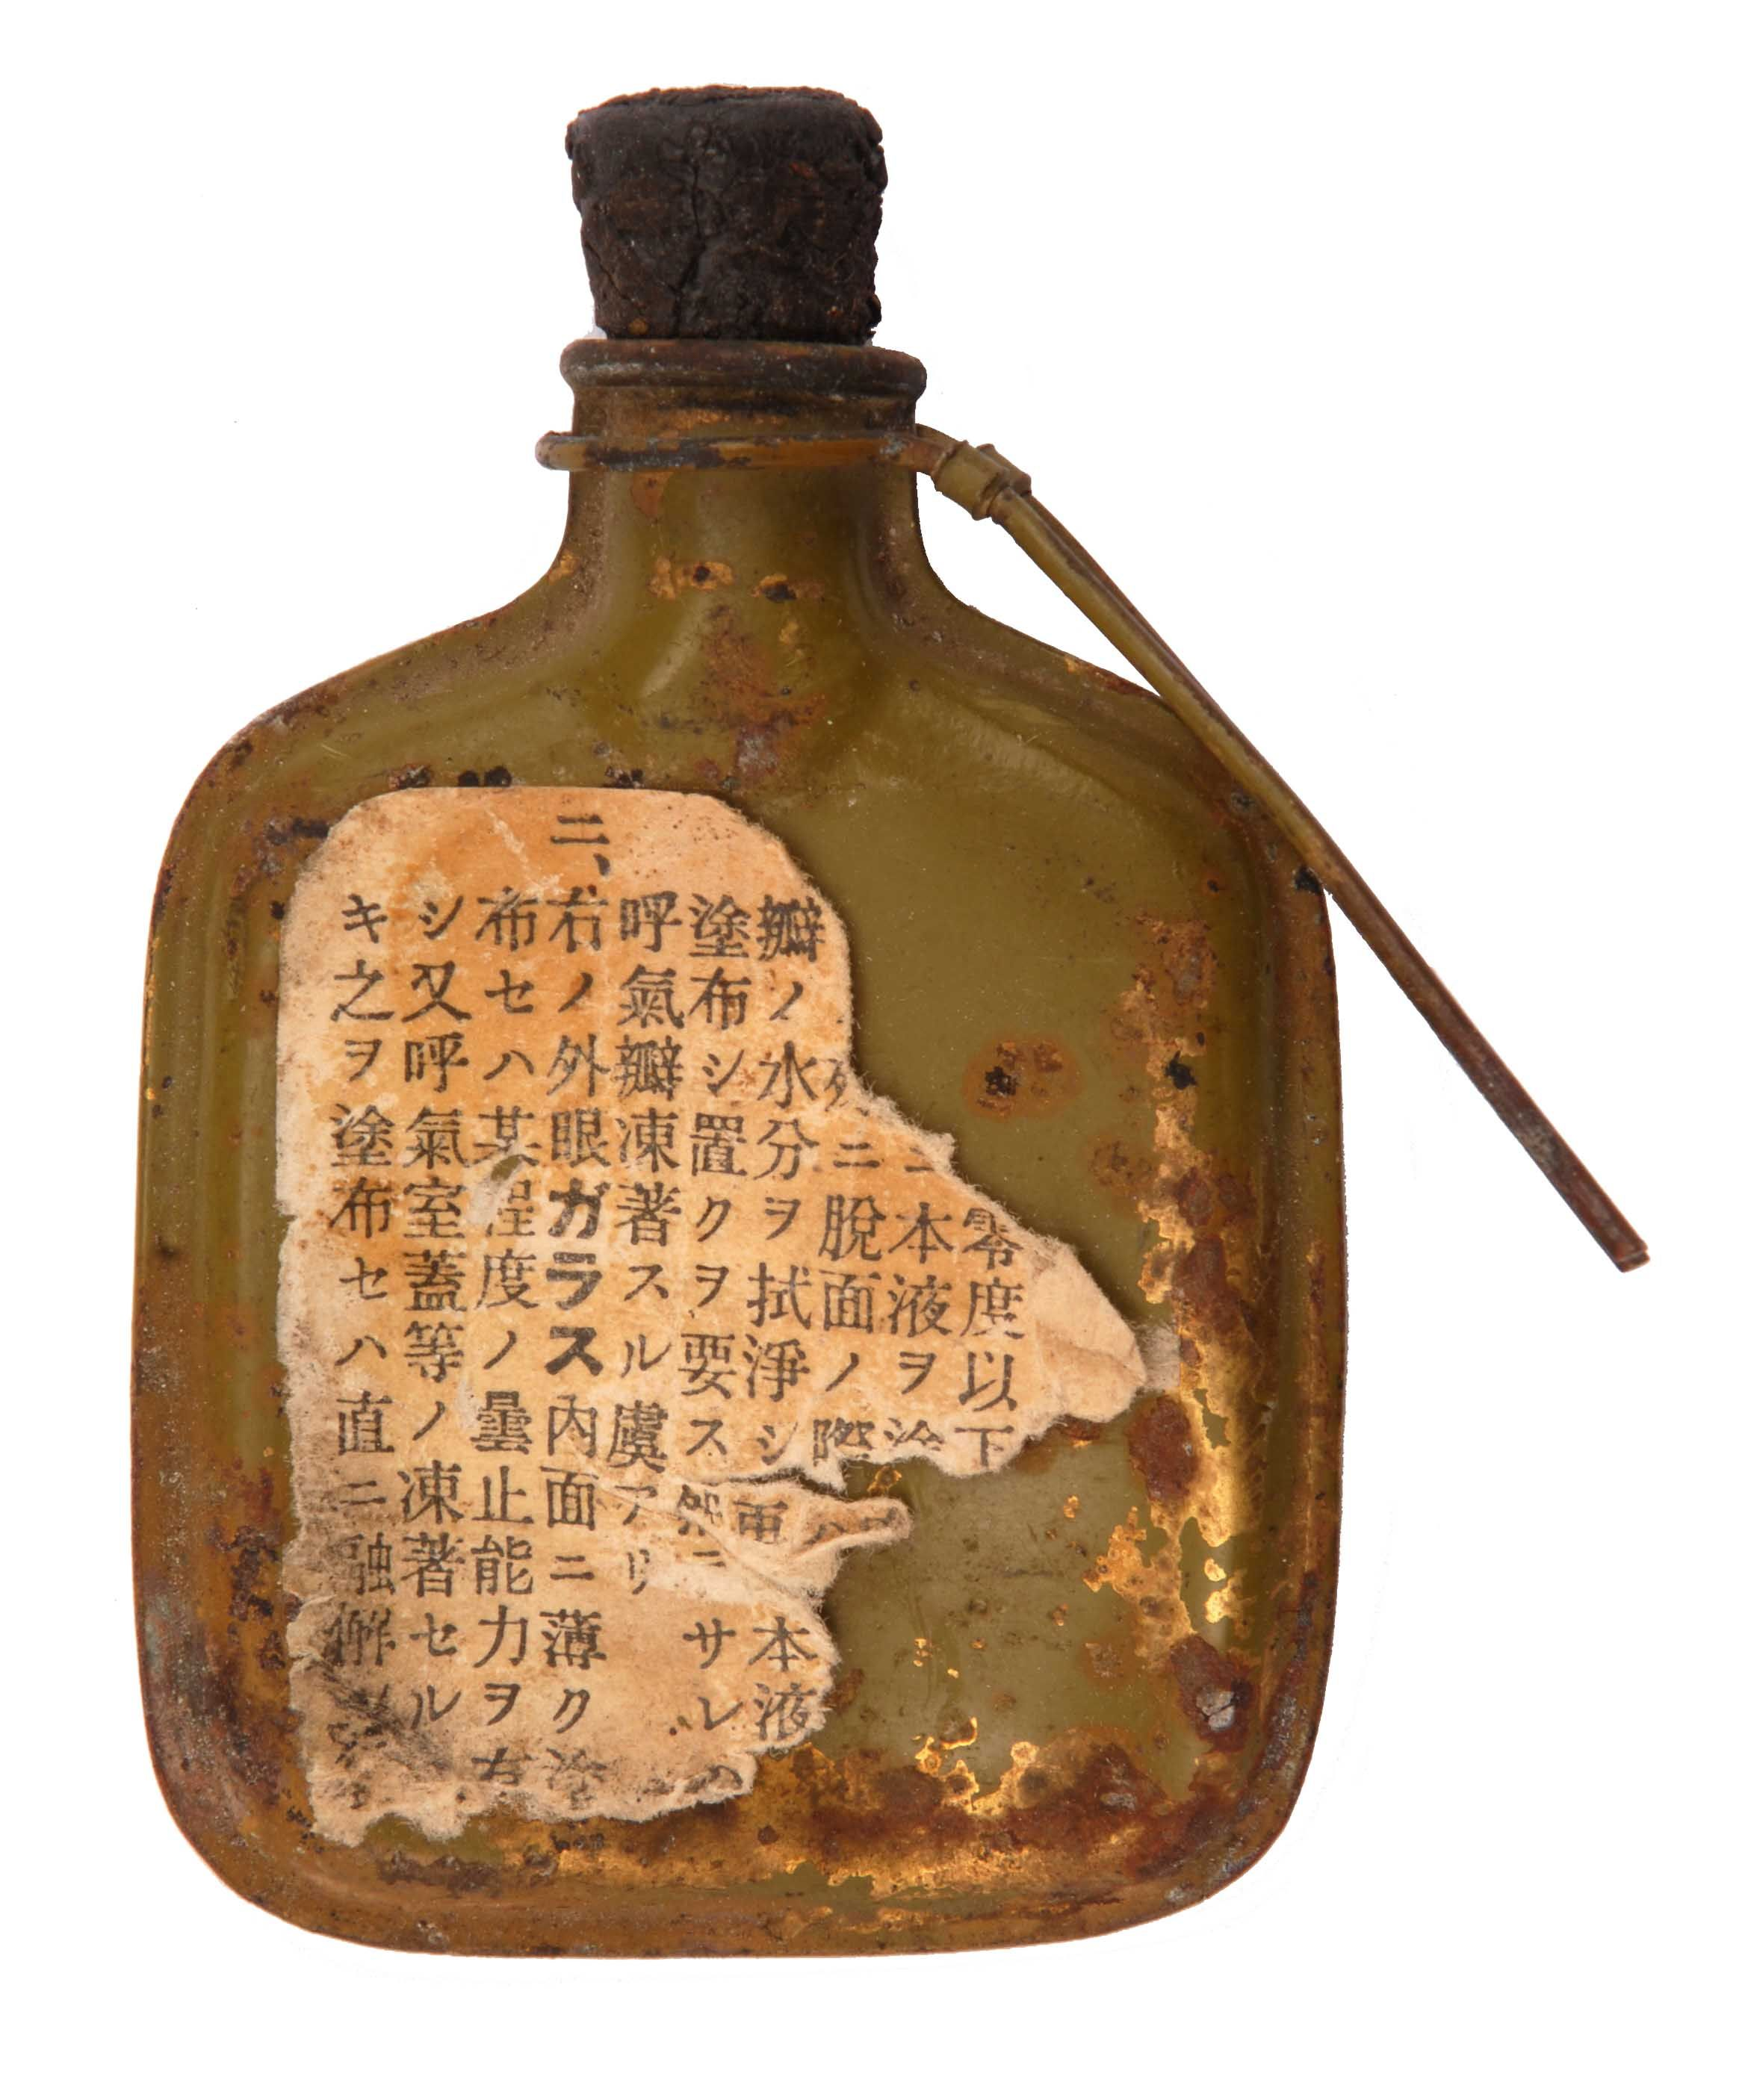 The bottle is obviously Japanese but what was it for? We